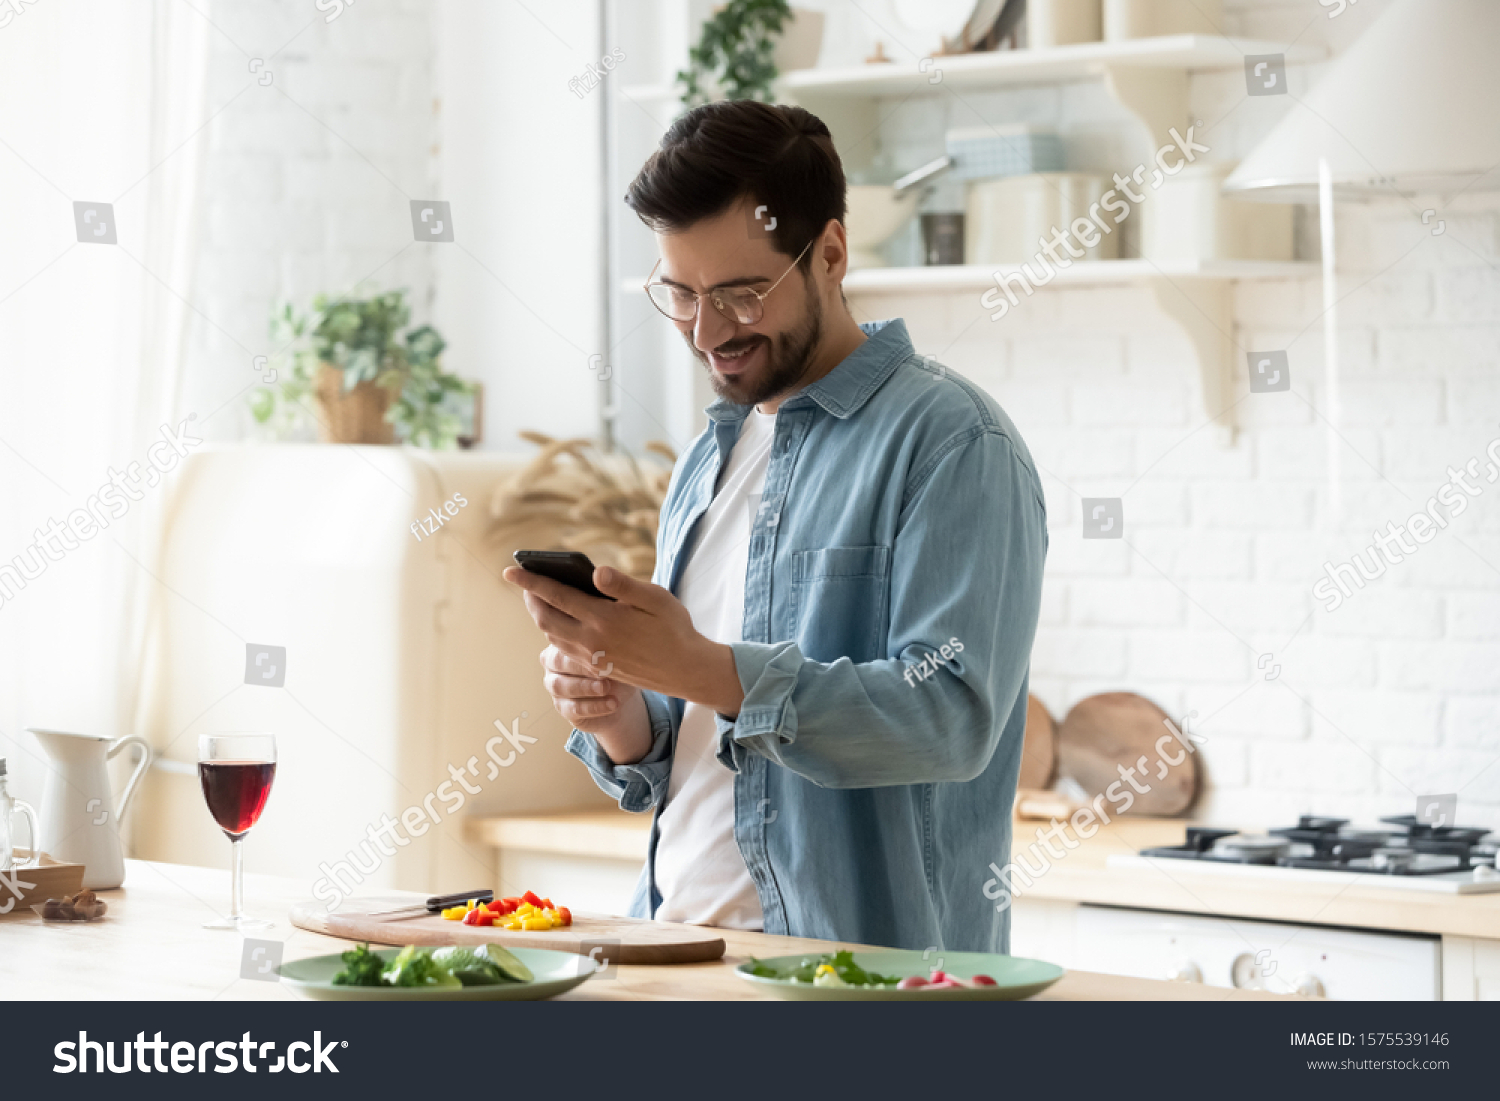 Happy young man preparing romantic dinner searching vegetable recipes diet menu cookbook app using smartphone, smiling husband holding phone cooking healthy vegan food cut salad in kitchen interior #1575539146